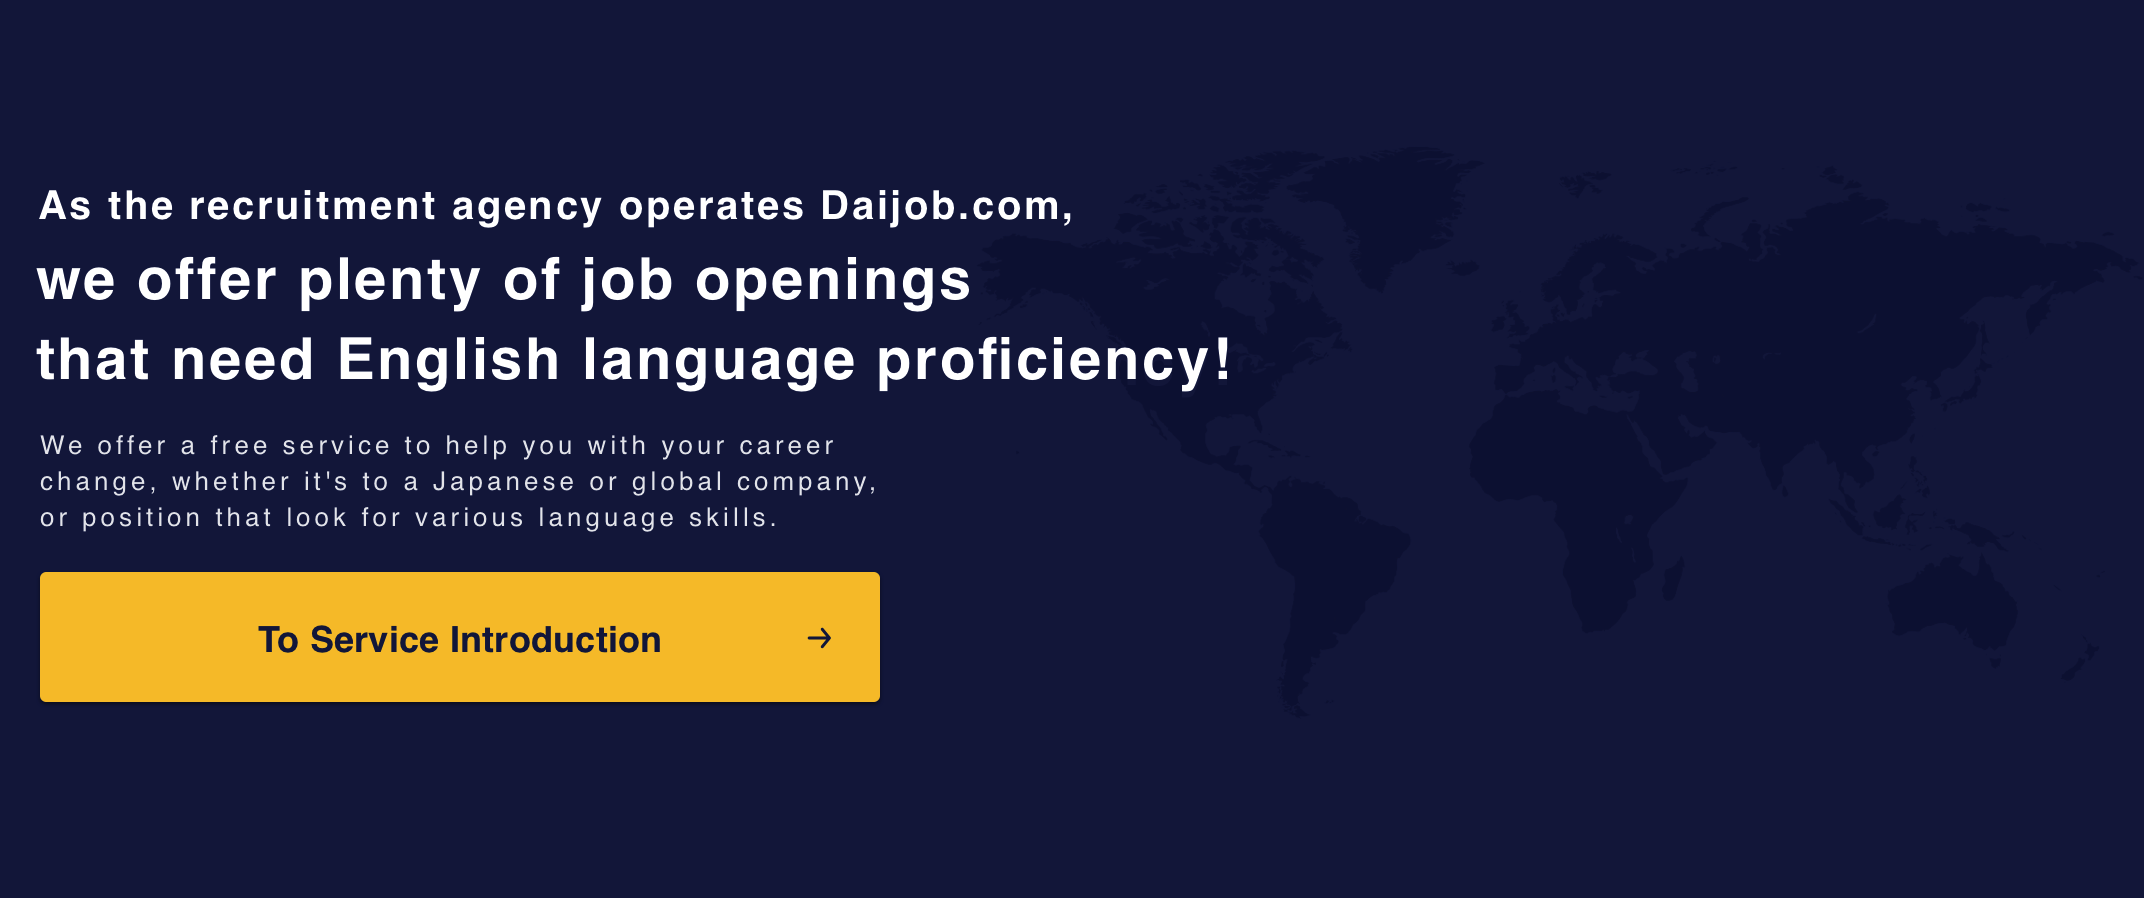 Opening of New Osaka Office in April 2019, thanks to your support! As the recruitment agency operates Daijob.com, we offer plenty of job openings that need English language proficiency!We offer a free service to help you with your career change, whether it's to a Japanese or global company, or position that look for various language skills.